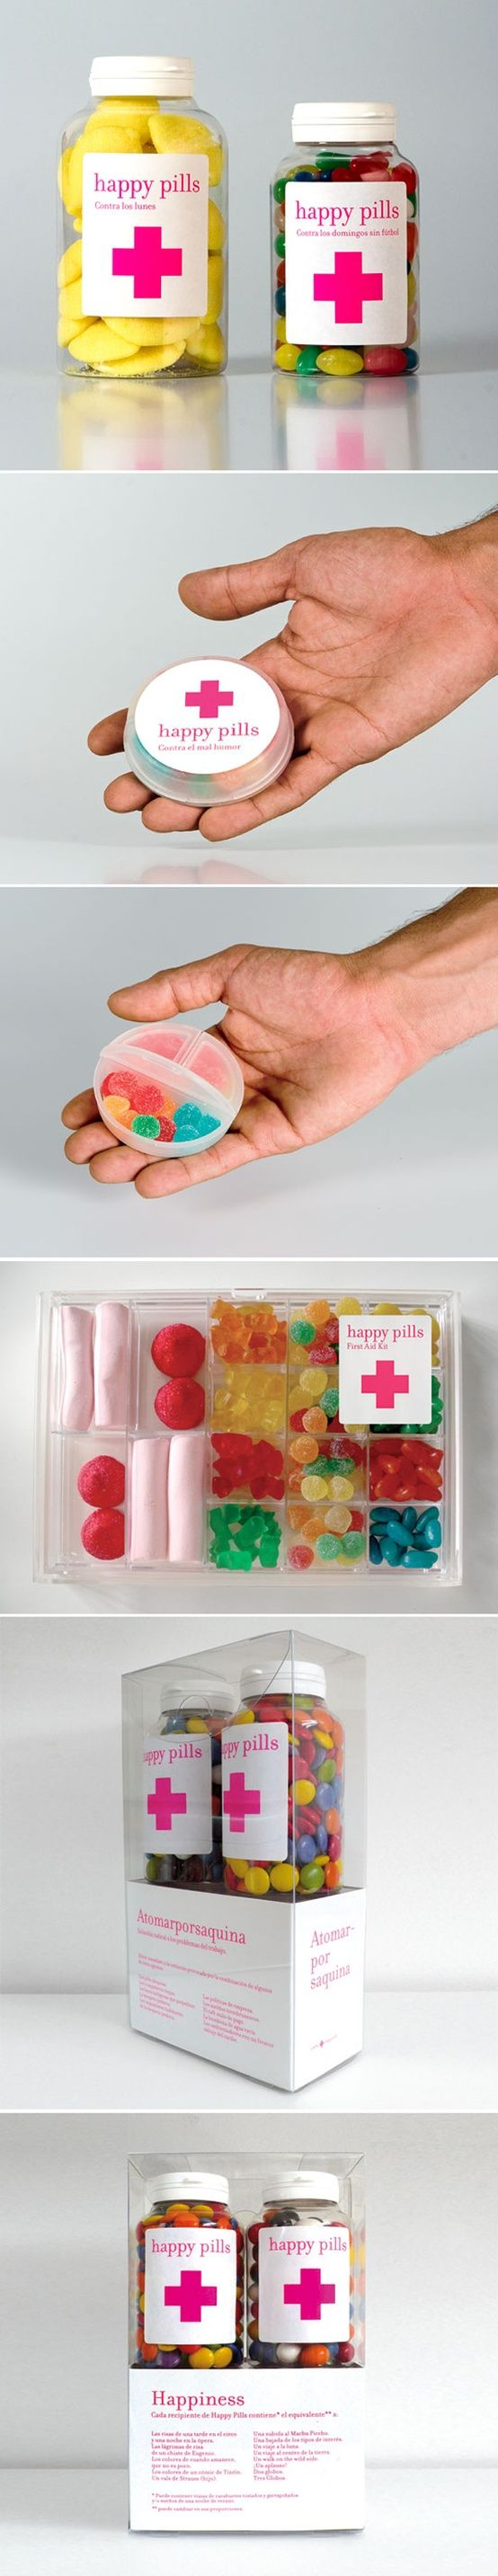 Happy Pills, creative candy packaging